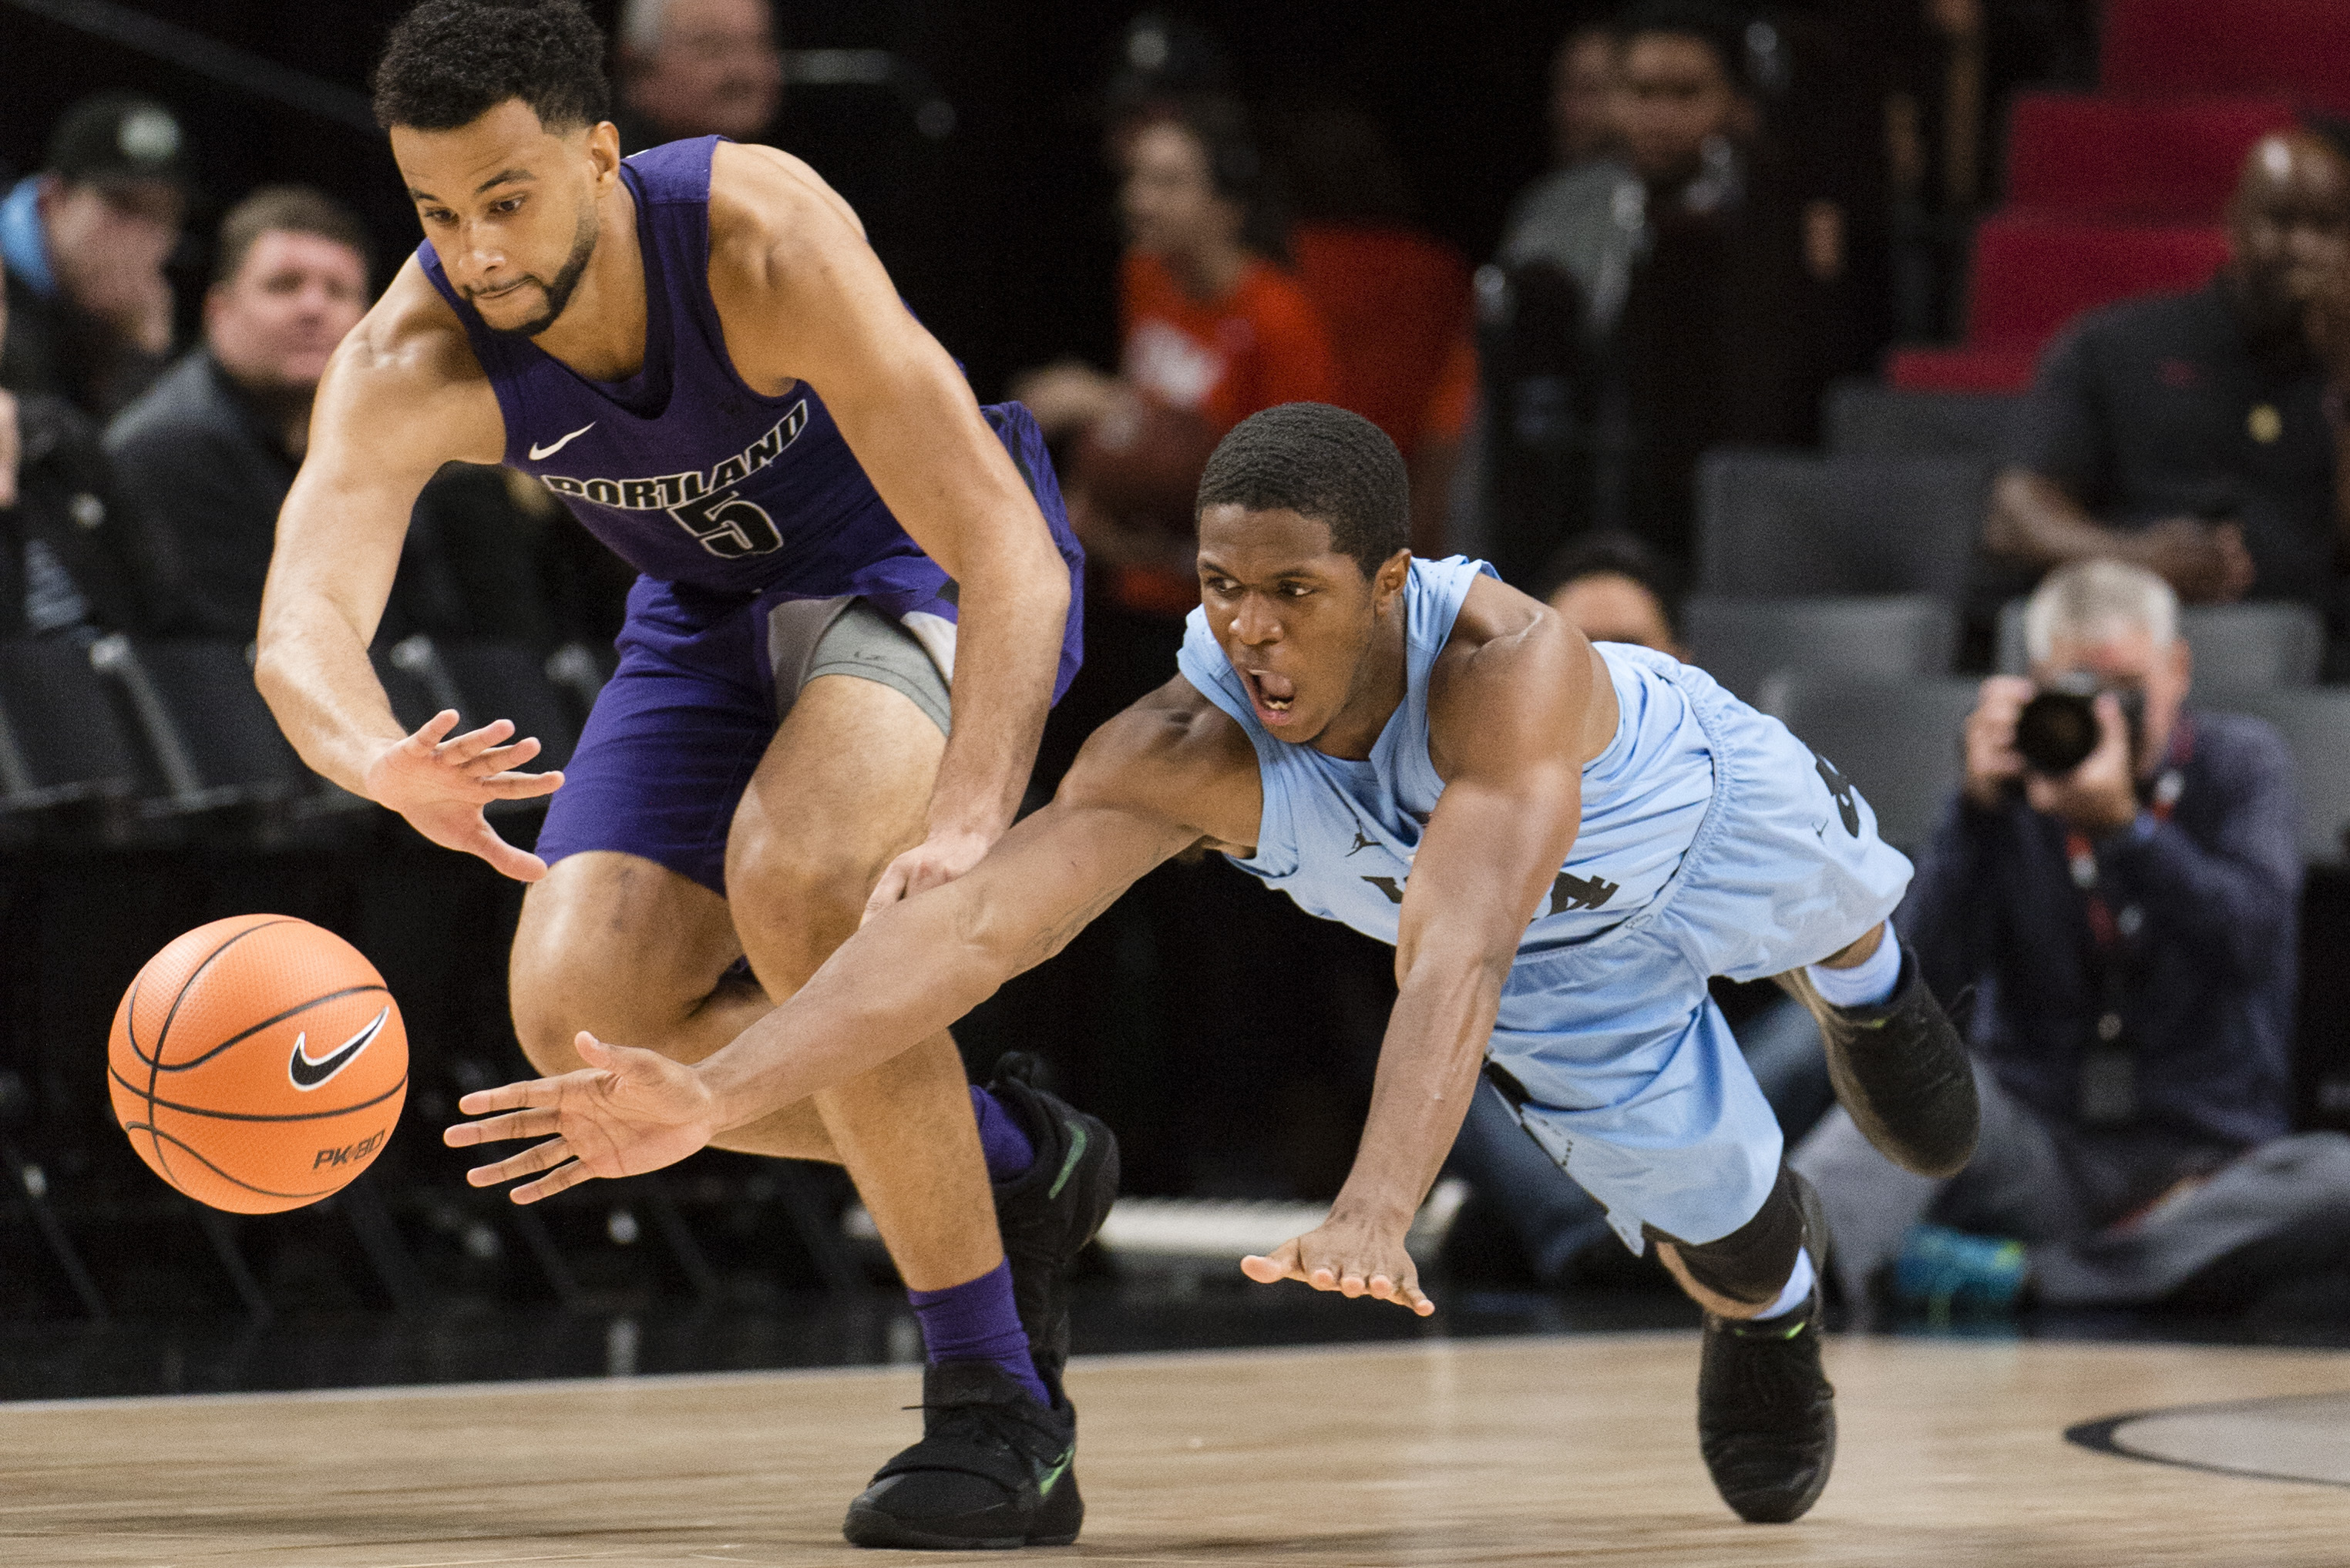 North Carolina guard Kenny Williams, right, dives for a loose ball against Portland guard D'Marques Tyson, left, during the first half in an NCAA college basketball game at the Phil Knight Invitation Tournament, in Portland, Ore., Thursday, Nov. 23, 2017. (AP Photo/Troy Wayrynen)